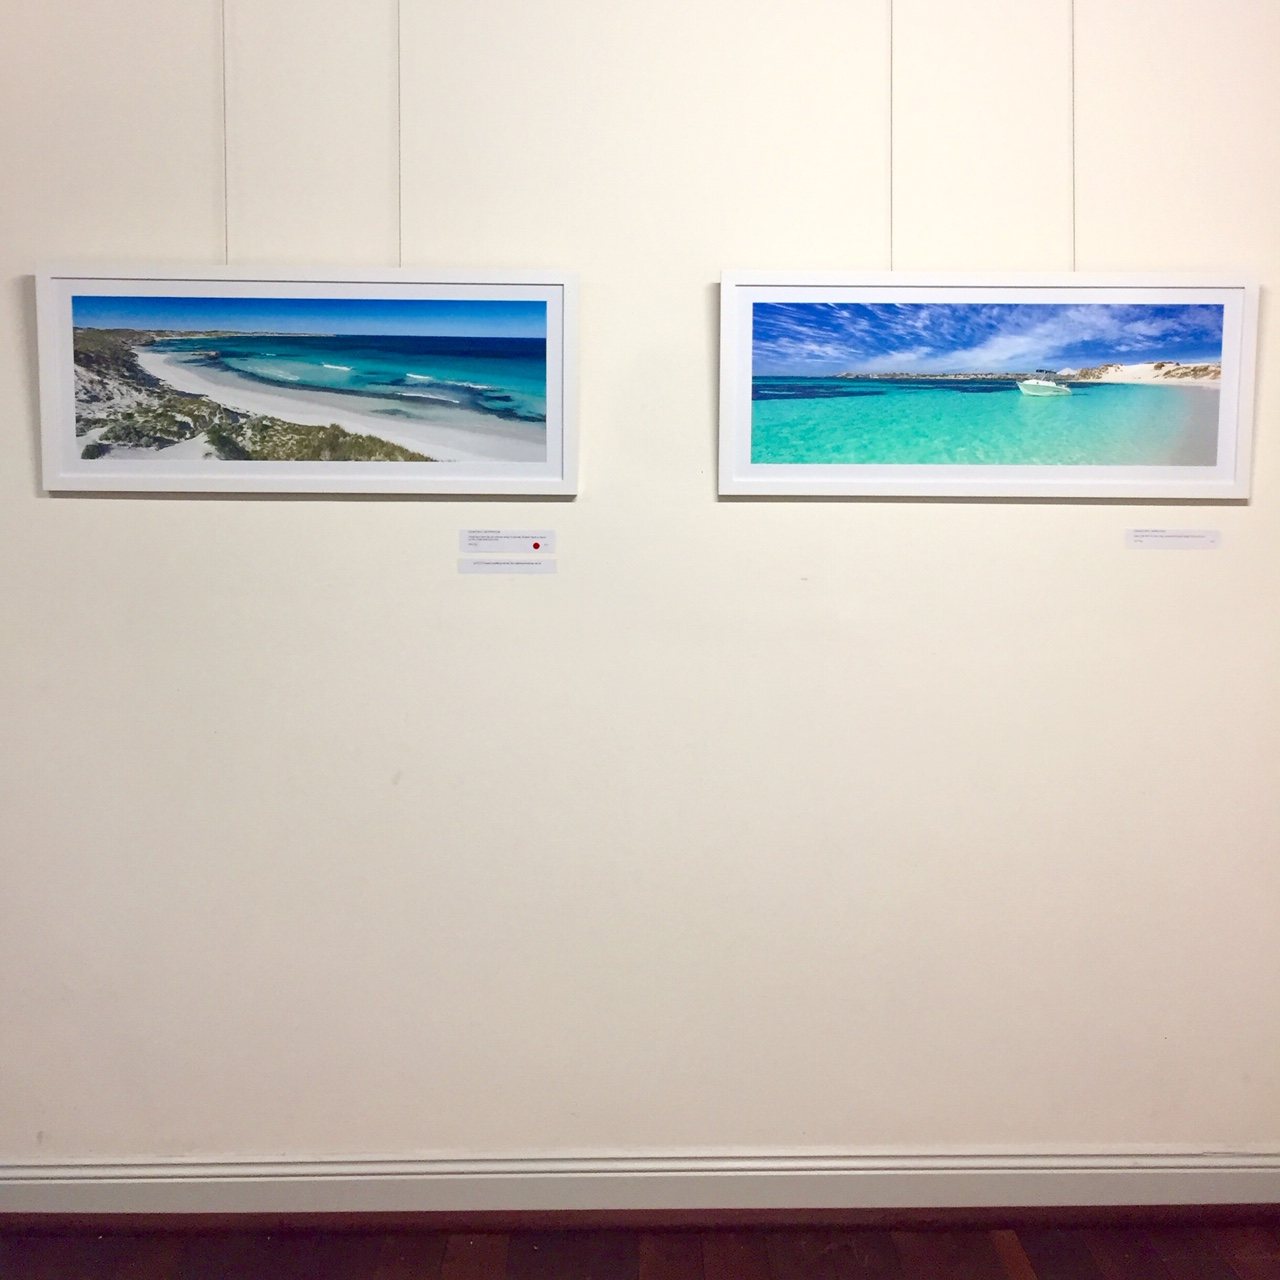 Two flawless mid winter Rottnest Island pieces. The 'Dolphins' end of Salmon Bay, and Parakeet Bay.